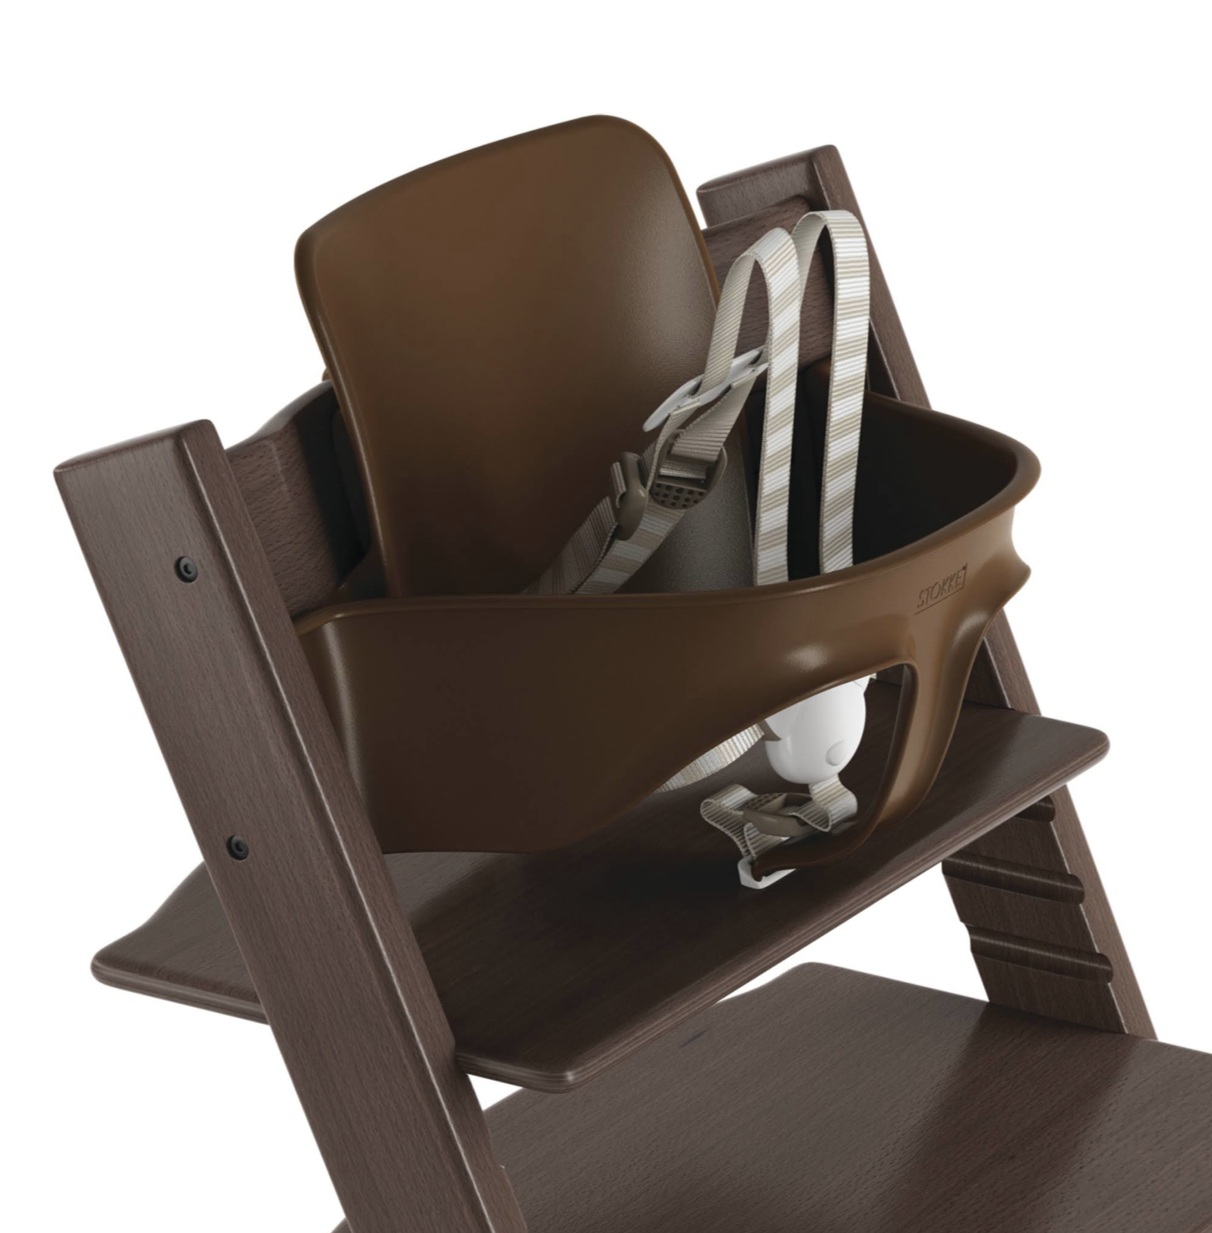 Stokke Tripp Trapp Highchair - Walnut